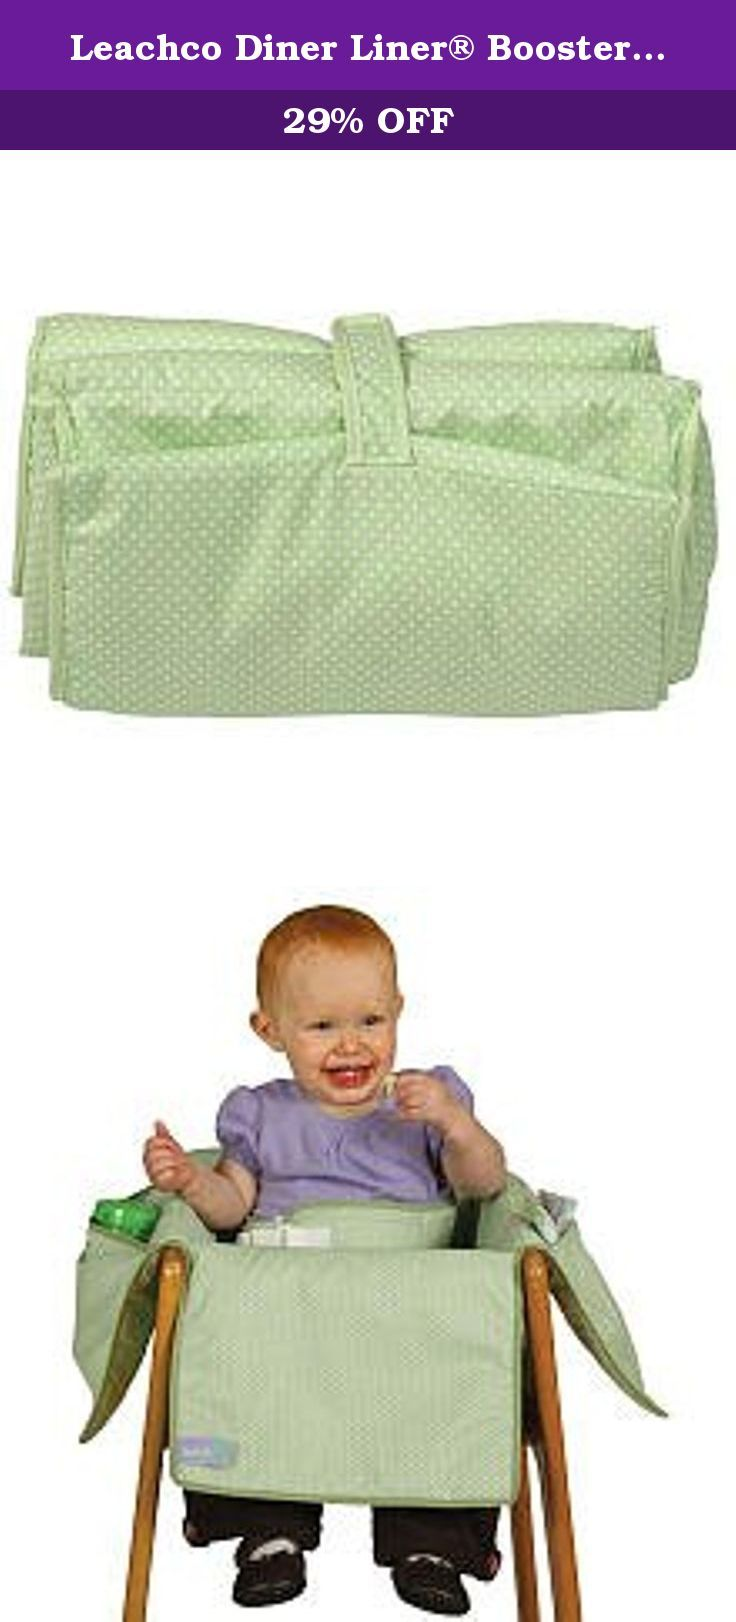 Leachco Diner Liner® Booster Chair Liner - Sage Dot. Leachco's Diner Liner Booster Chair Liner with Safety Belt in green pin dot print provides full coverage protection while dining out. Protects from germs, old food particles and even provides a stand-up restraint and slip prevention, all in one portable product. Safety belt is included to keep baby upright and secure. Convenient fold and go design and attaches to booster chair with VELCRO® brand closure for ease of use. Fully padded for...